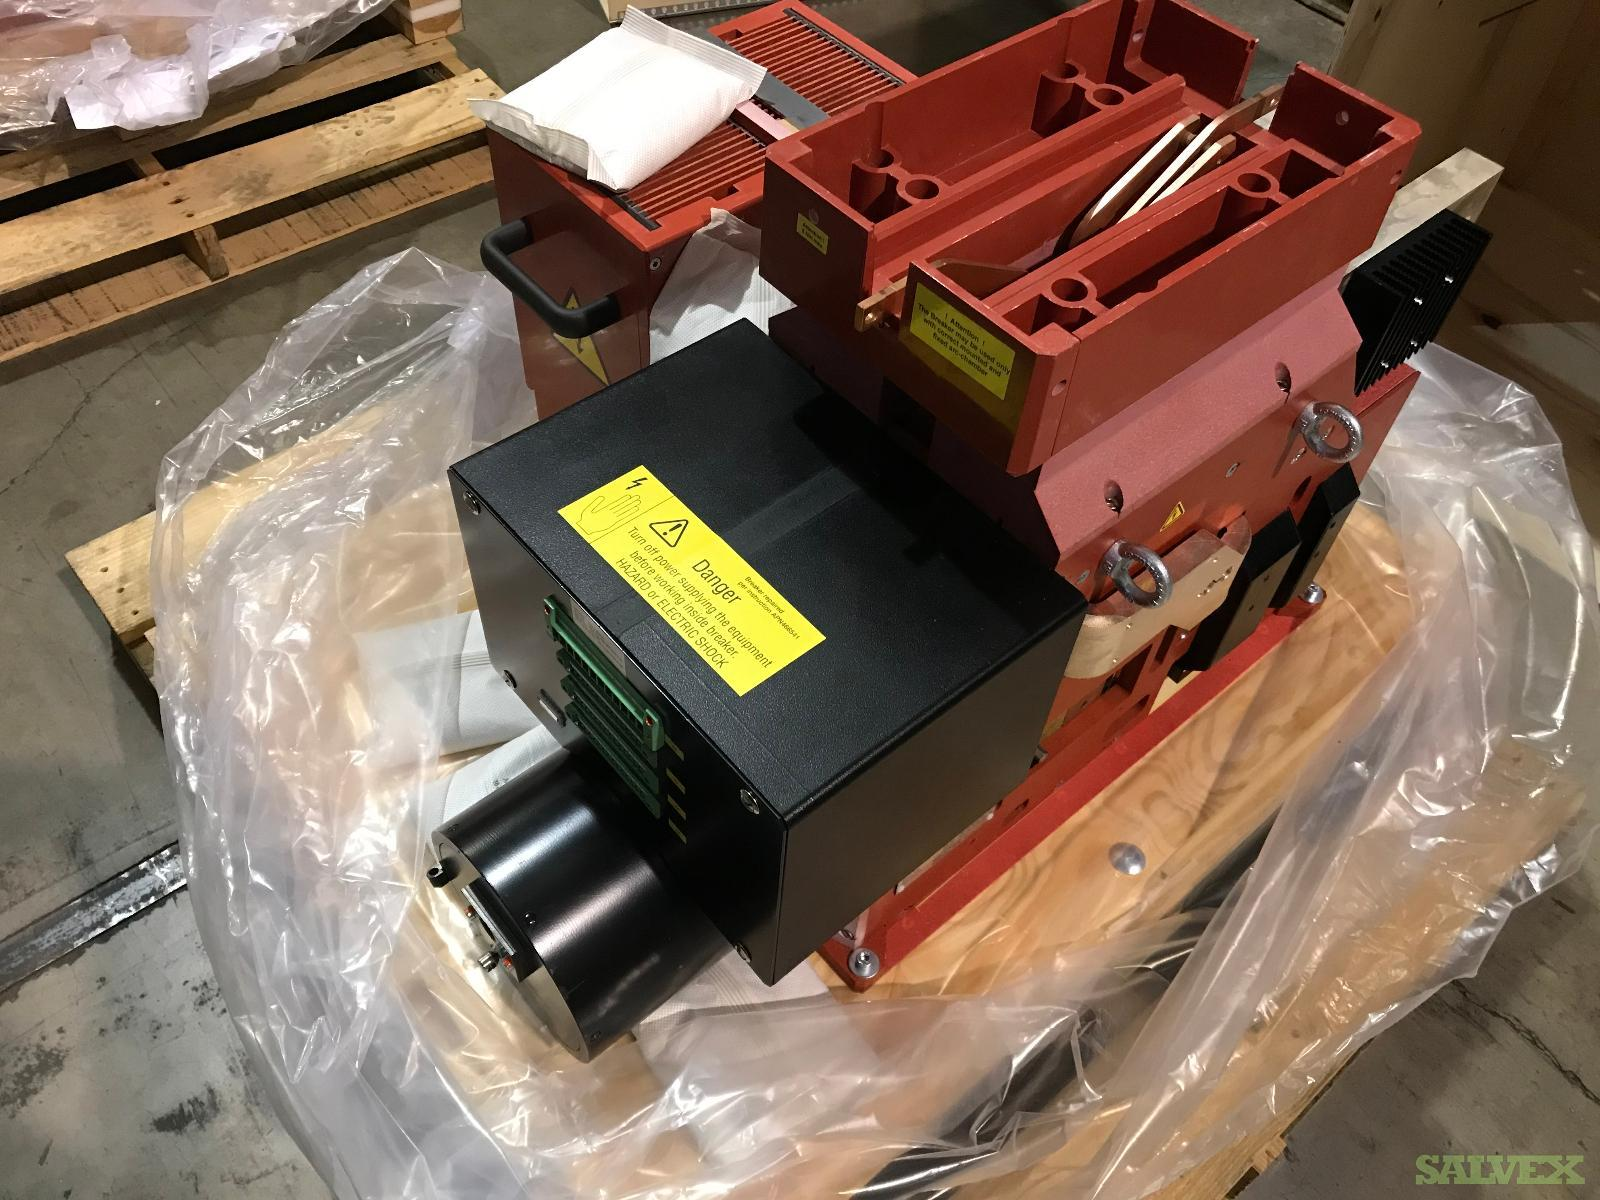 GE Gerapid High Speed DC Breakers - for DC Switch-Gear / New, Still in Boxes (16 Units)